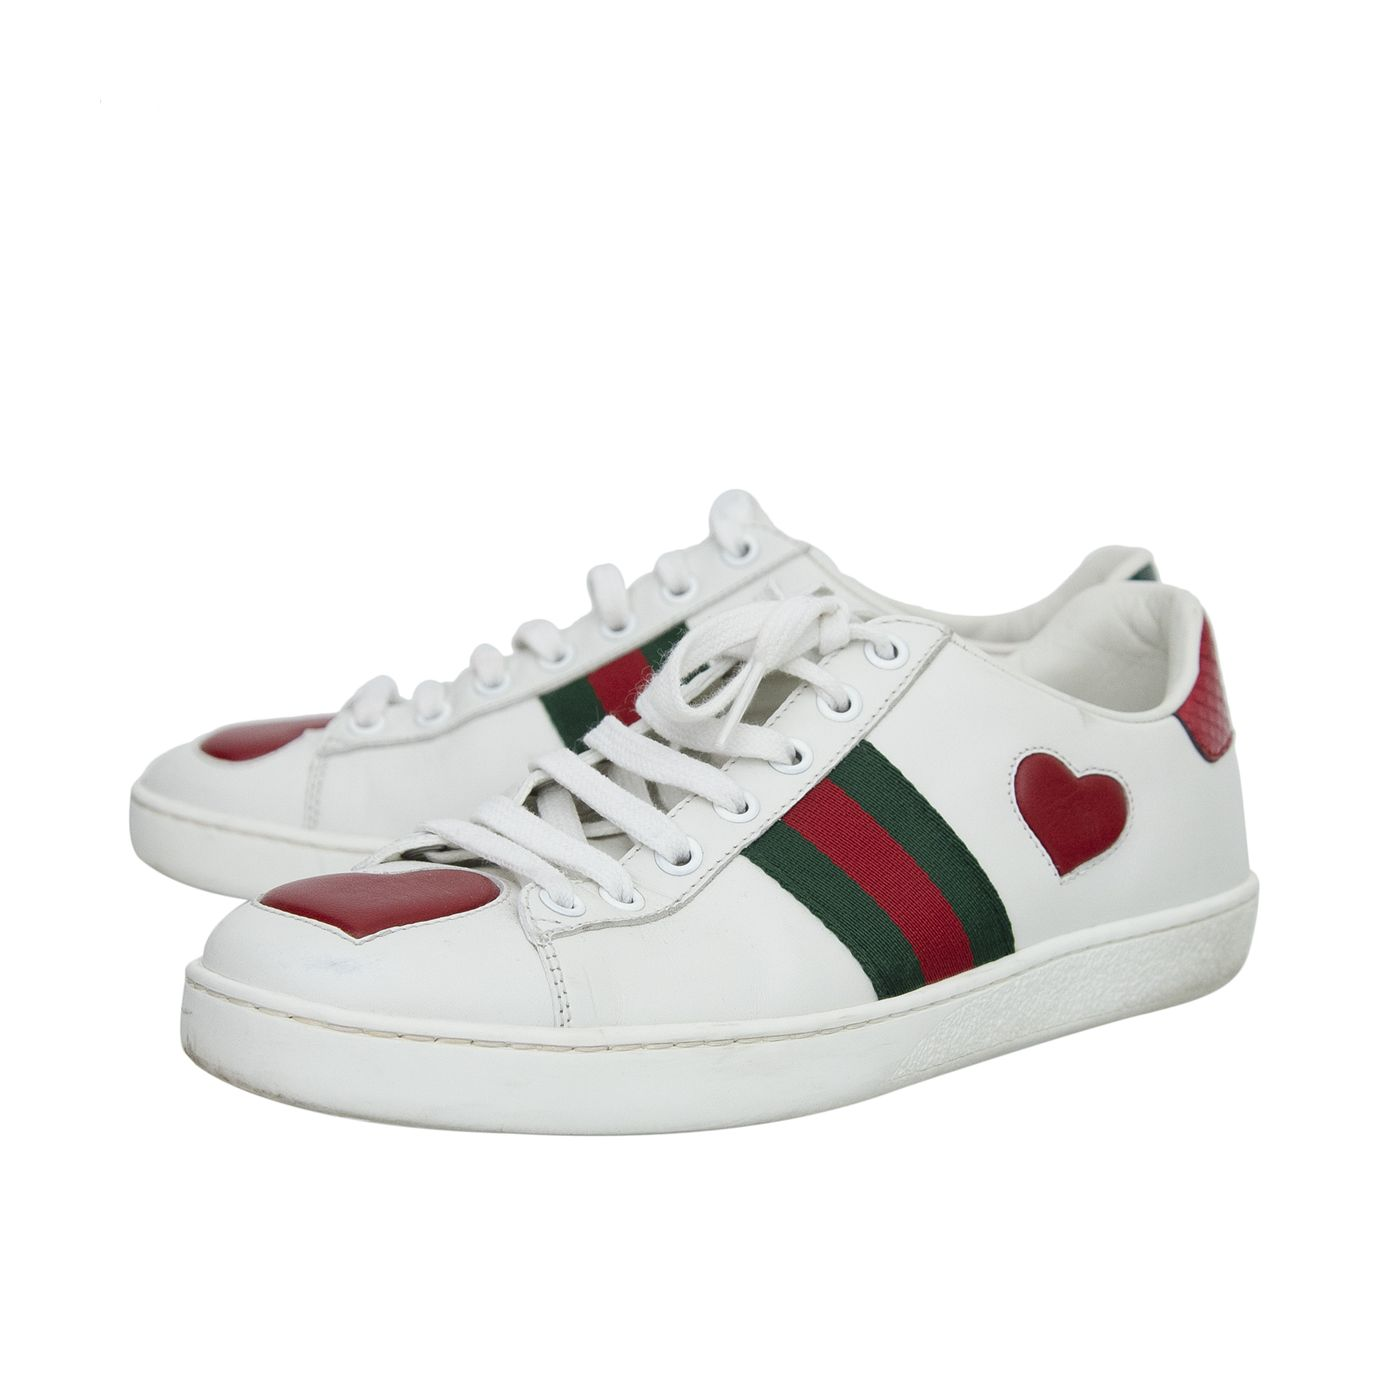 Gucci Tricolor Ace Heart Sneakers 37.5